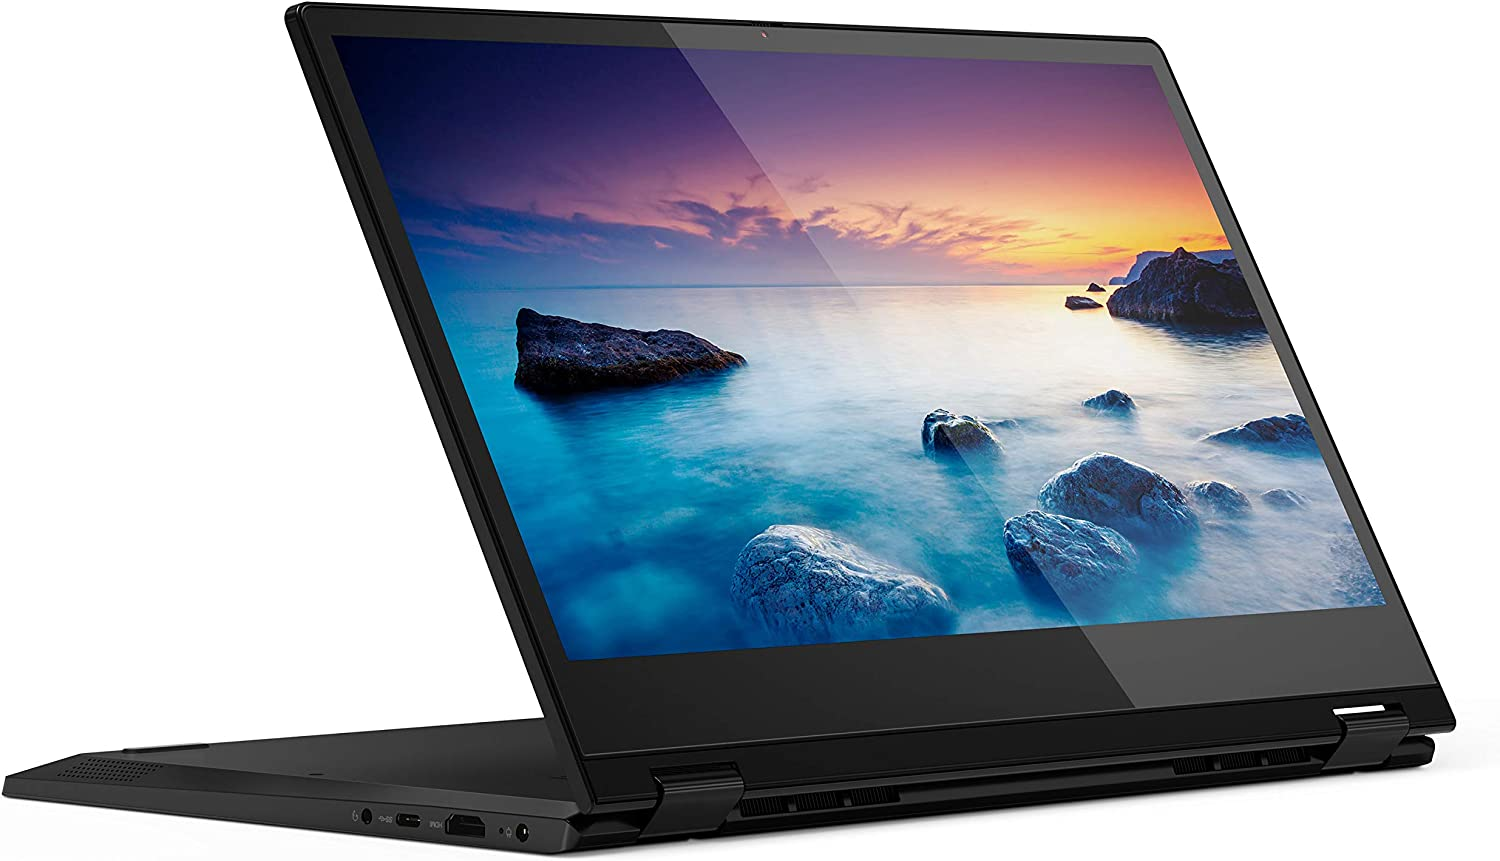 "Lenovo Flex 14 2-in-1 Convertible Laptop, 14.0"" FHD (1920 X 1080) Display, 10th Gen Intel Core i7-10510U Processor, 16GB DDR4 RAM, 512GB SSD, Intel UHD Graphics, Windows 10, 81XG0005US, Onyx Black"